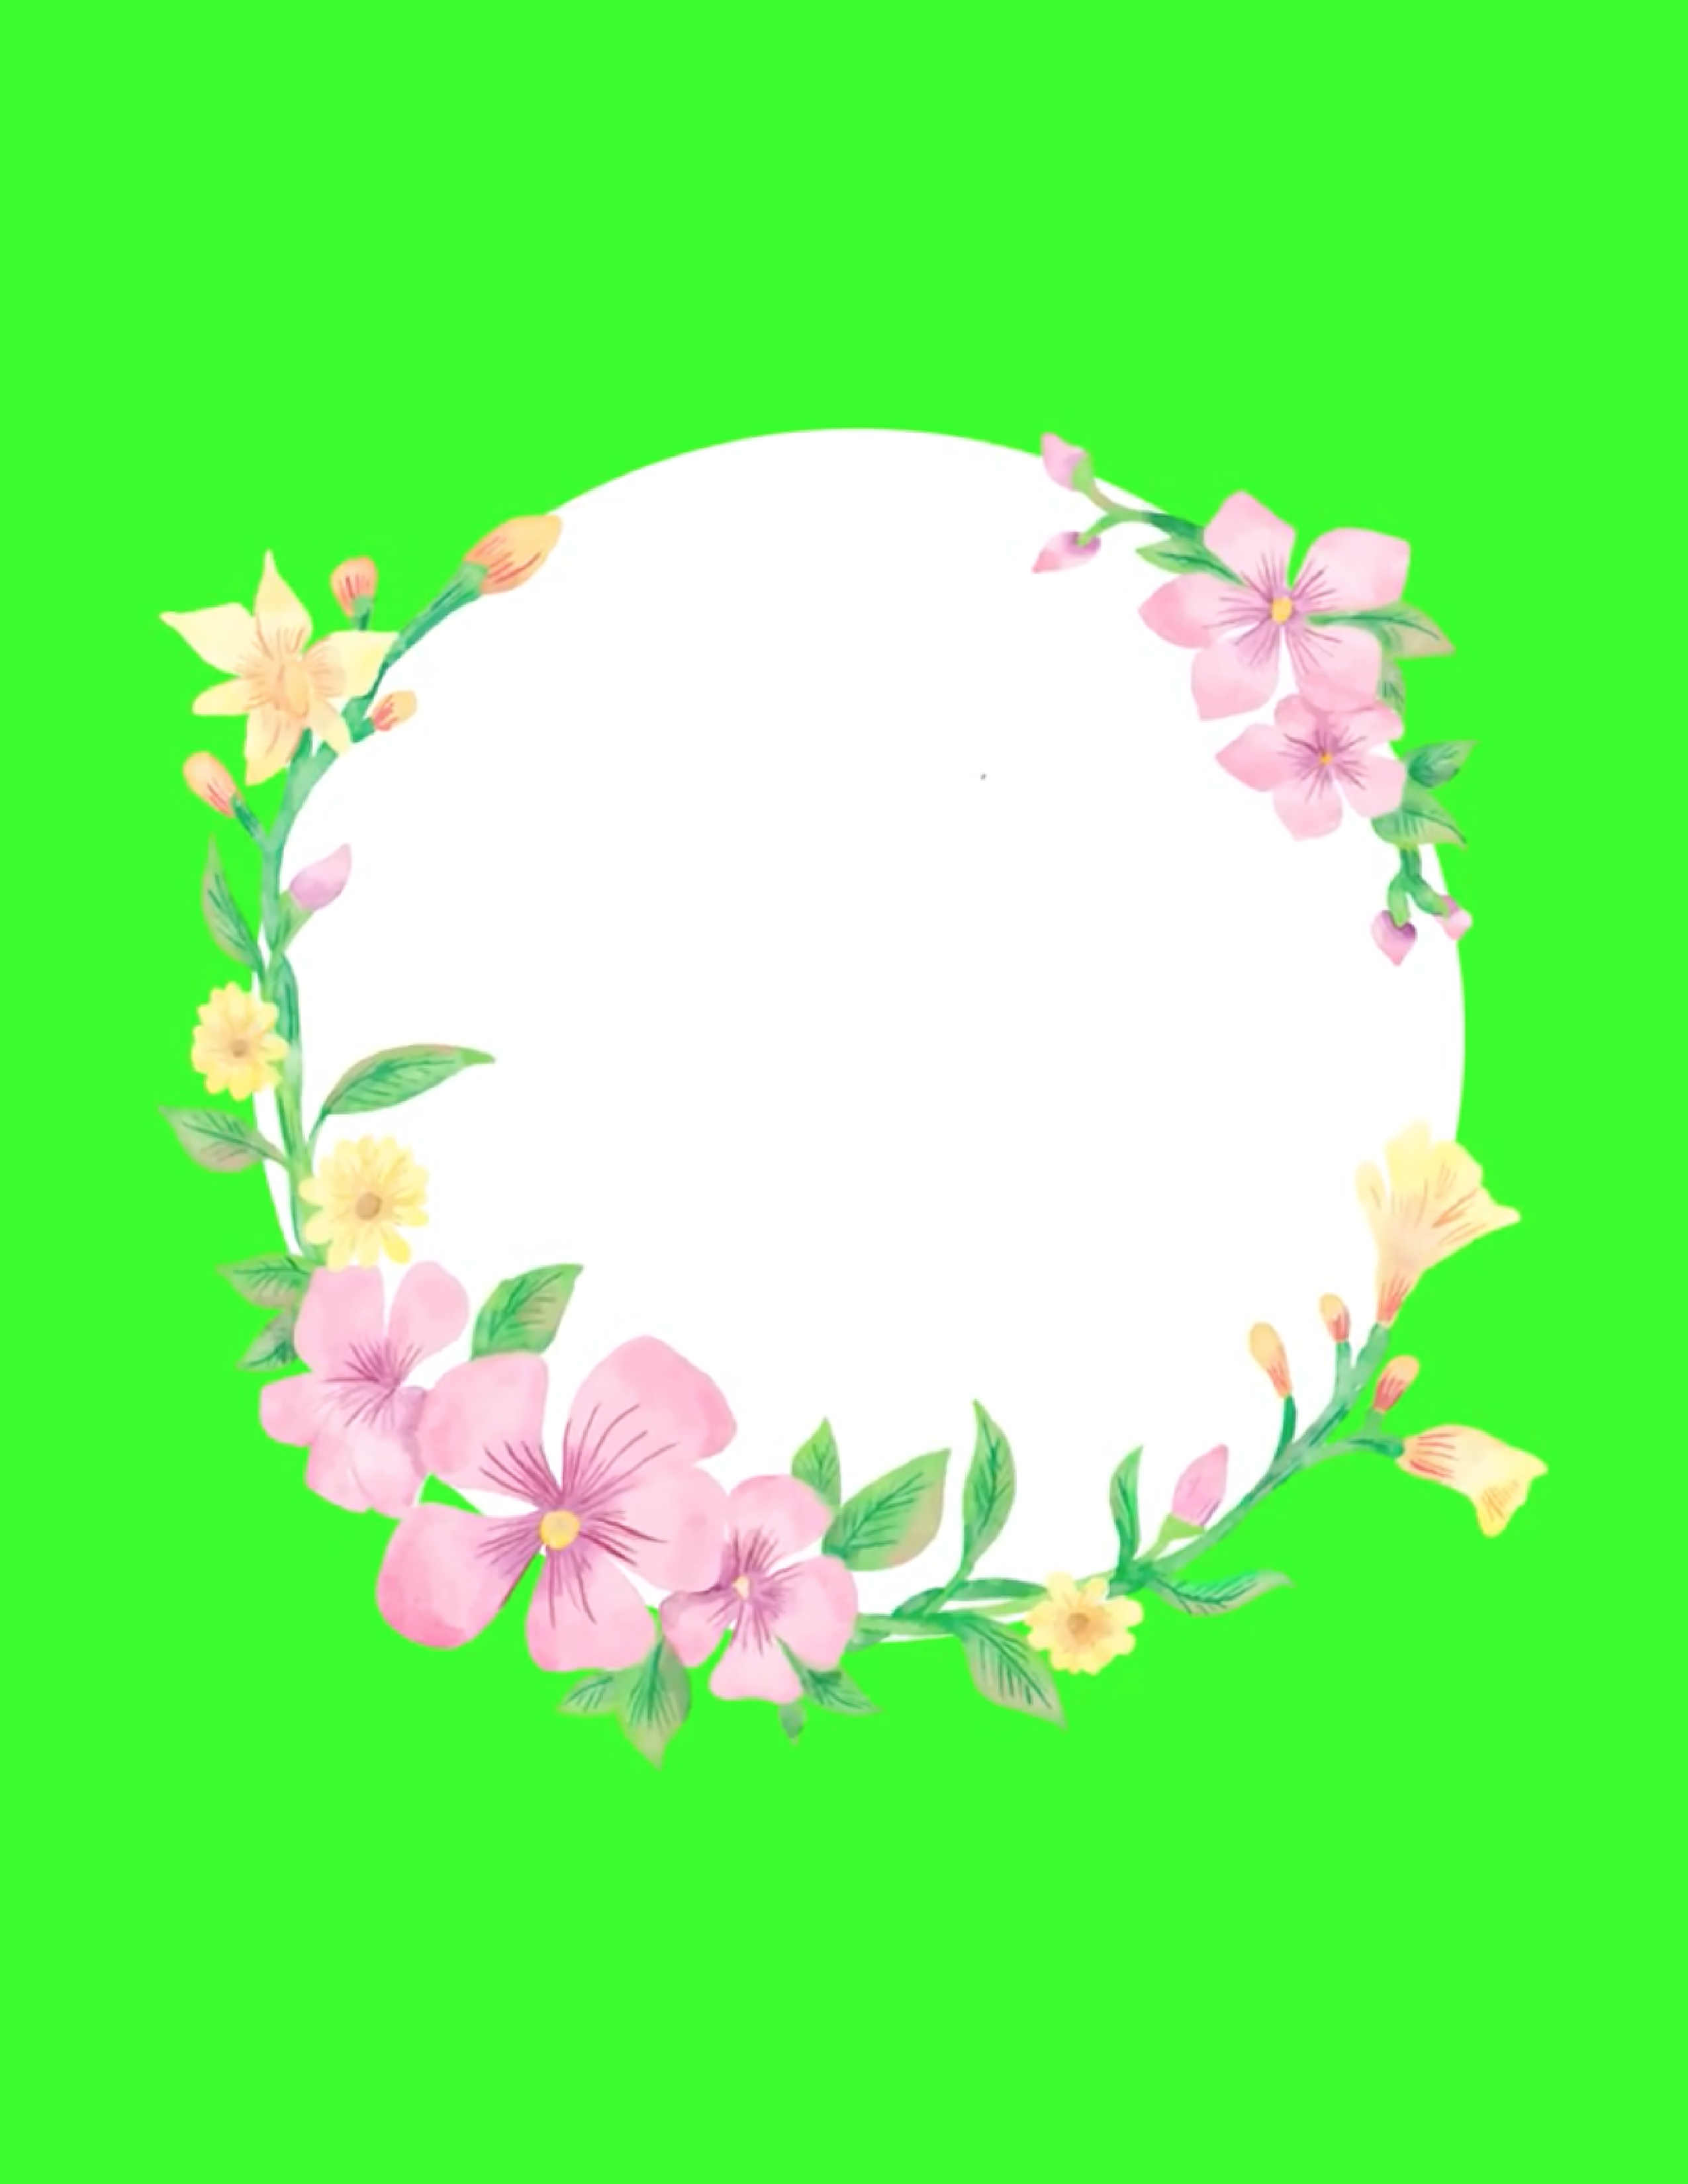 Free Animated Crown Flowers Swing White Text Space In 2020 Greenscreen Wedding Frames Free Green Screen Illustration of smiling frog cartoon style. pinterest